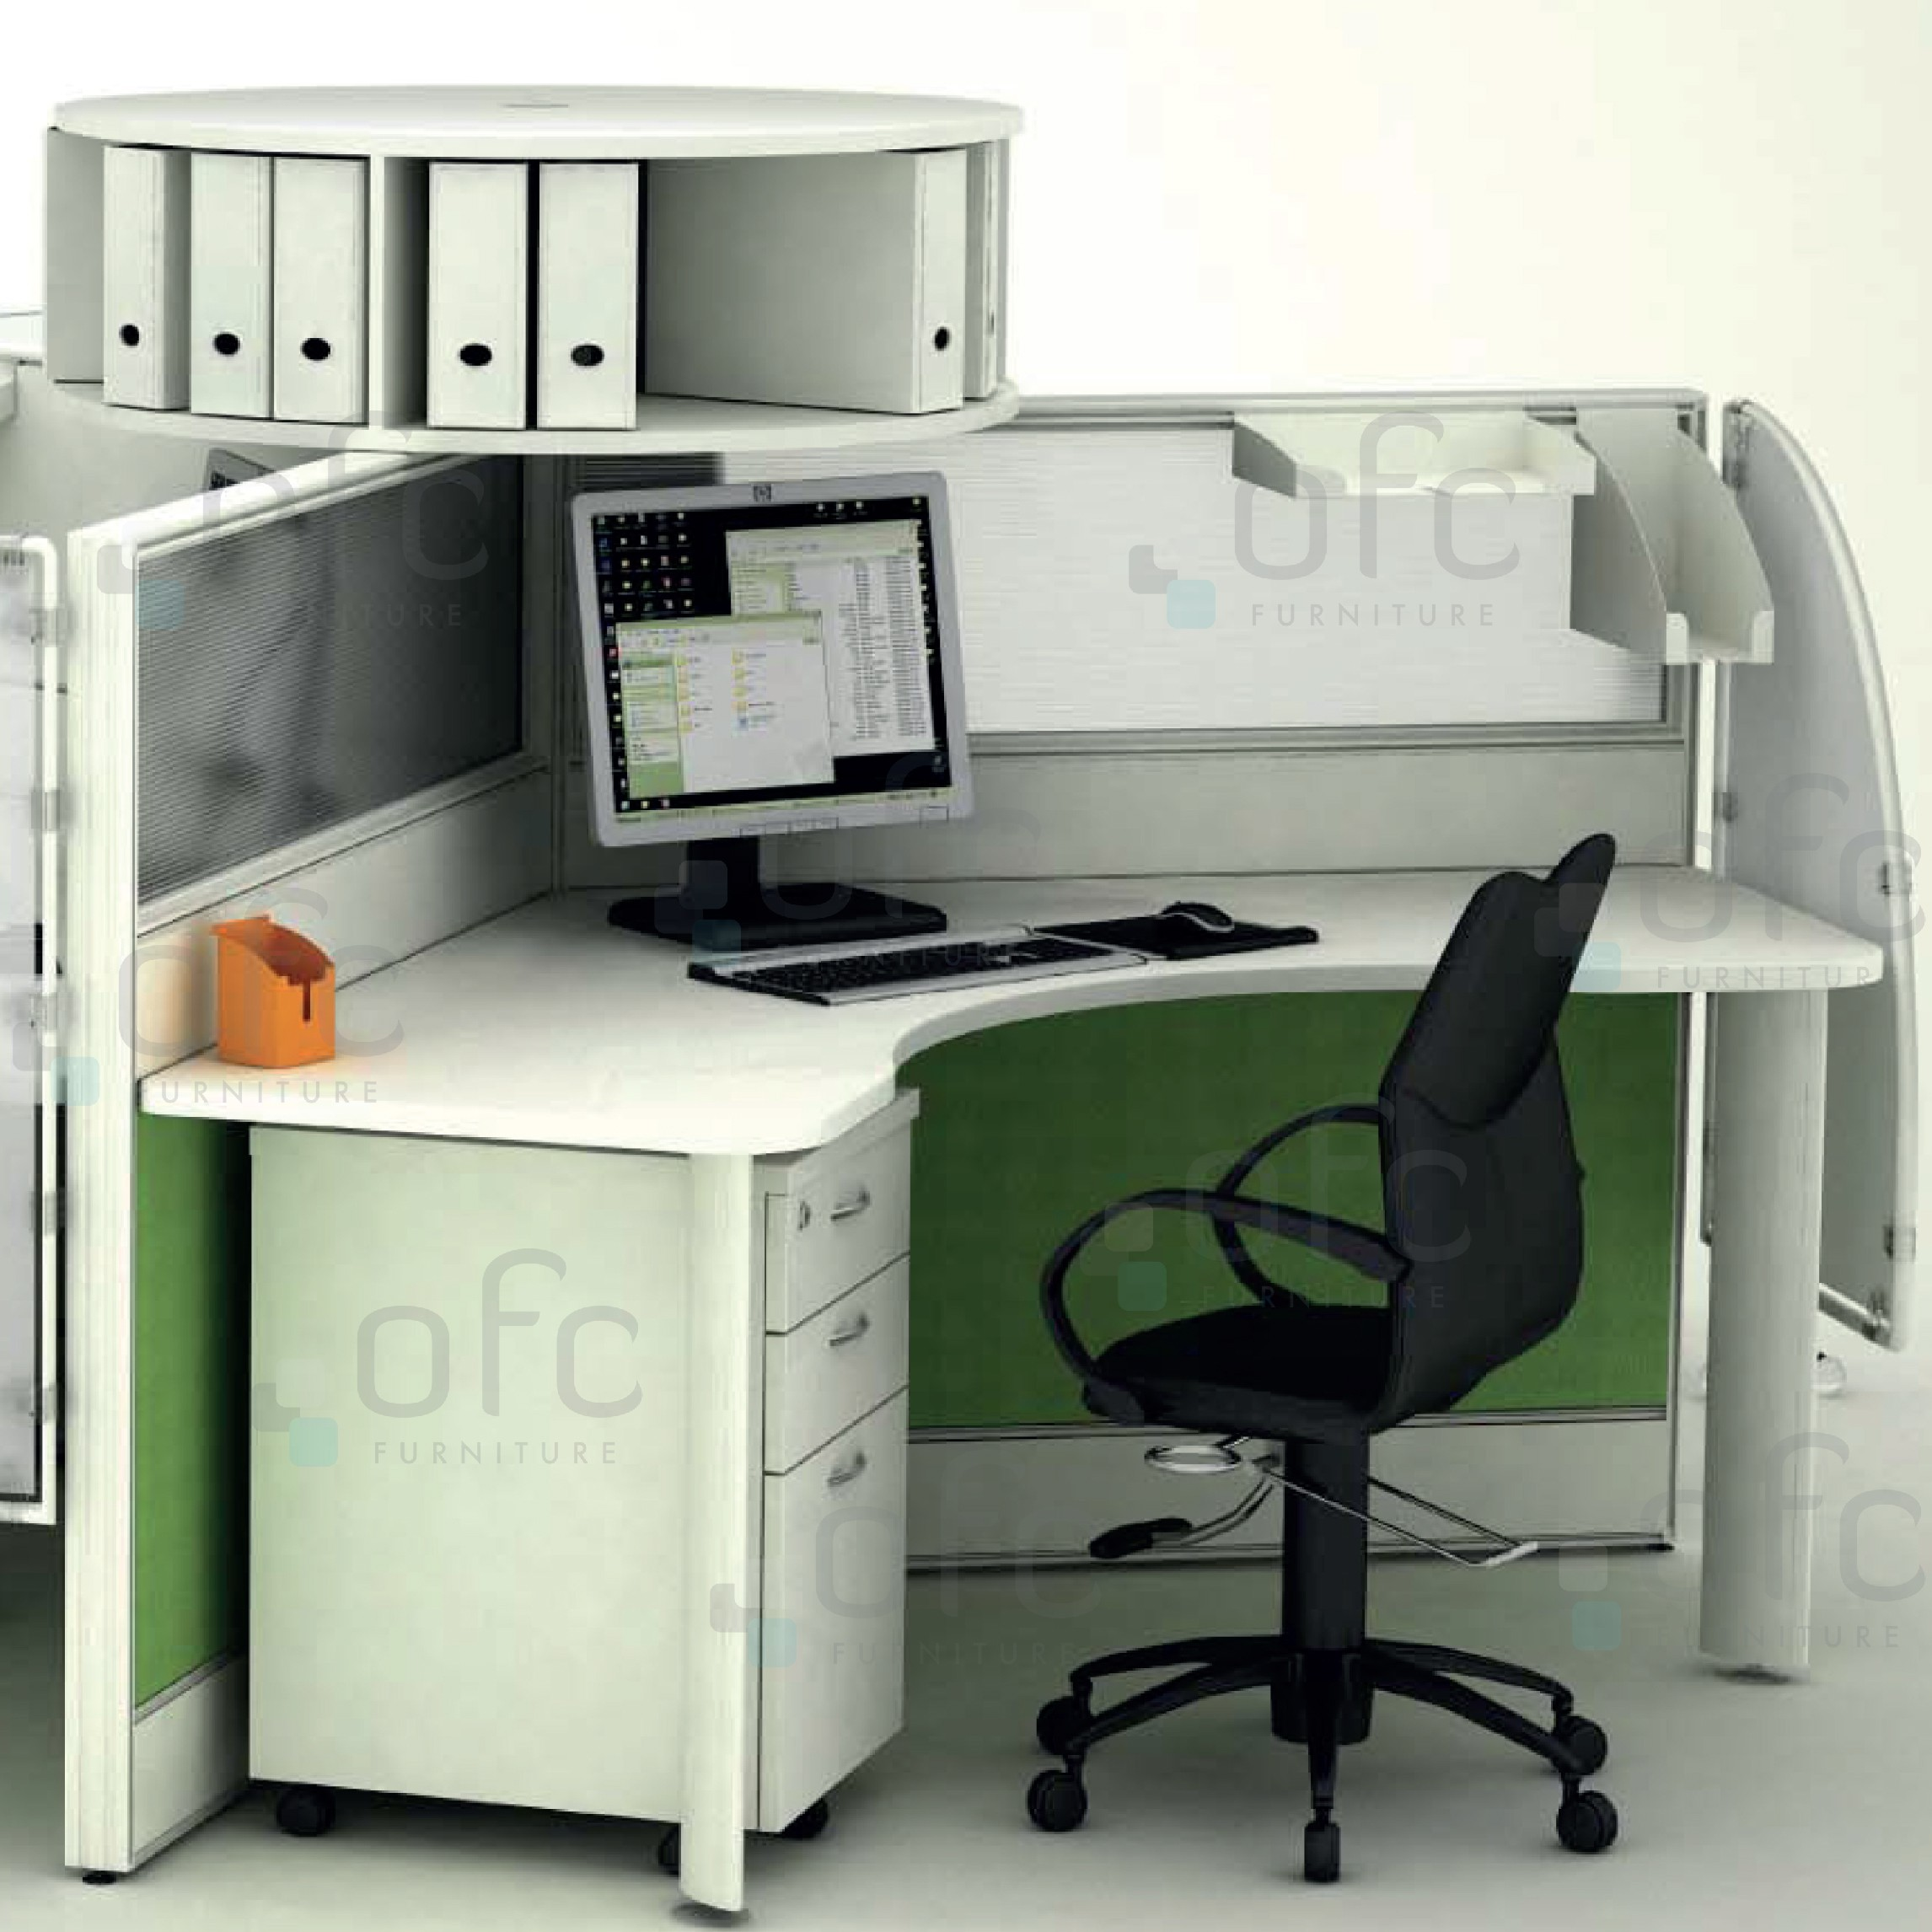 Sophisticated Cable Management Office Furniture System